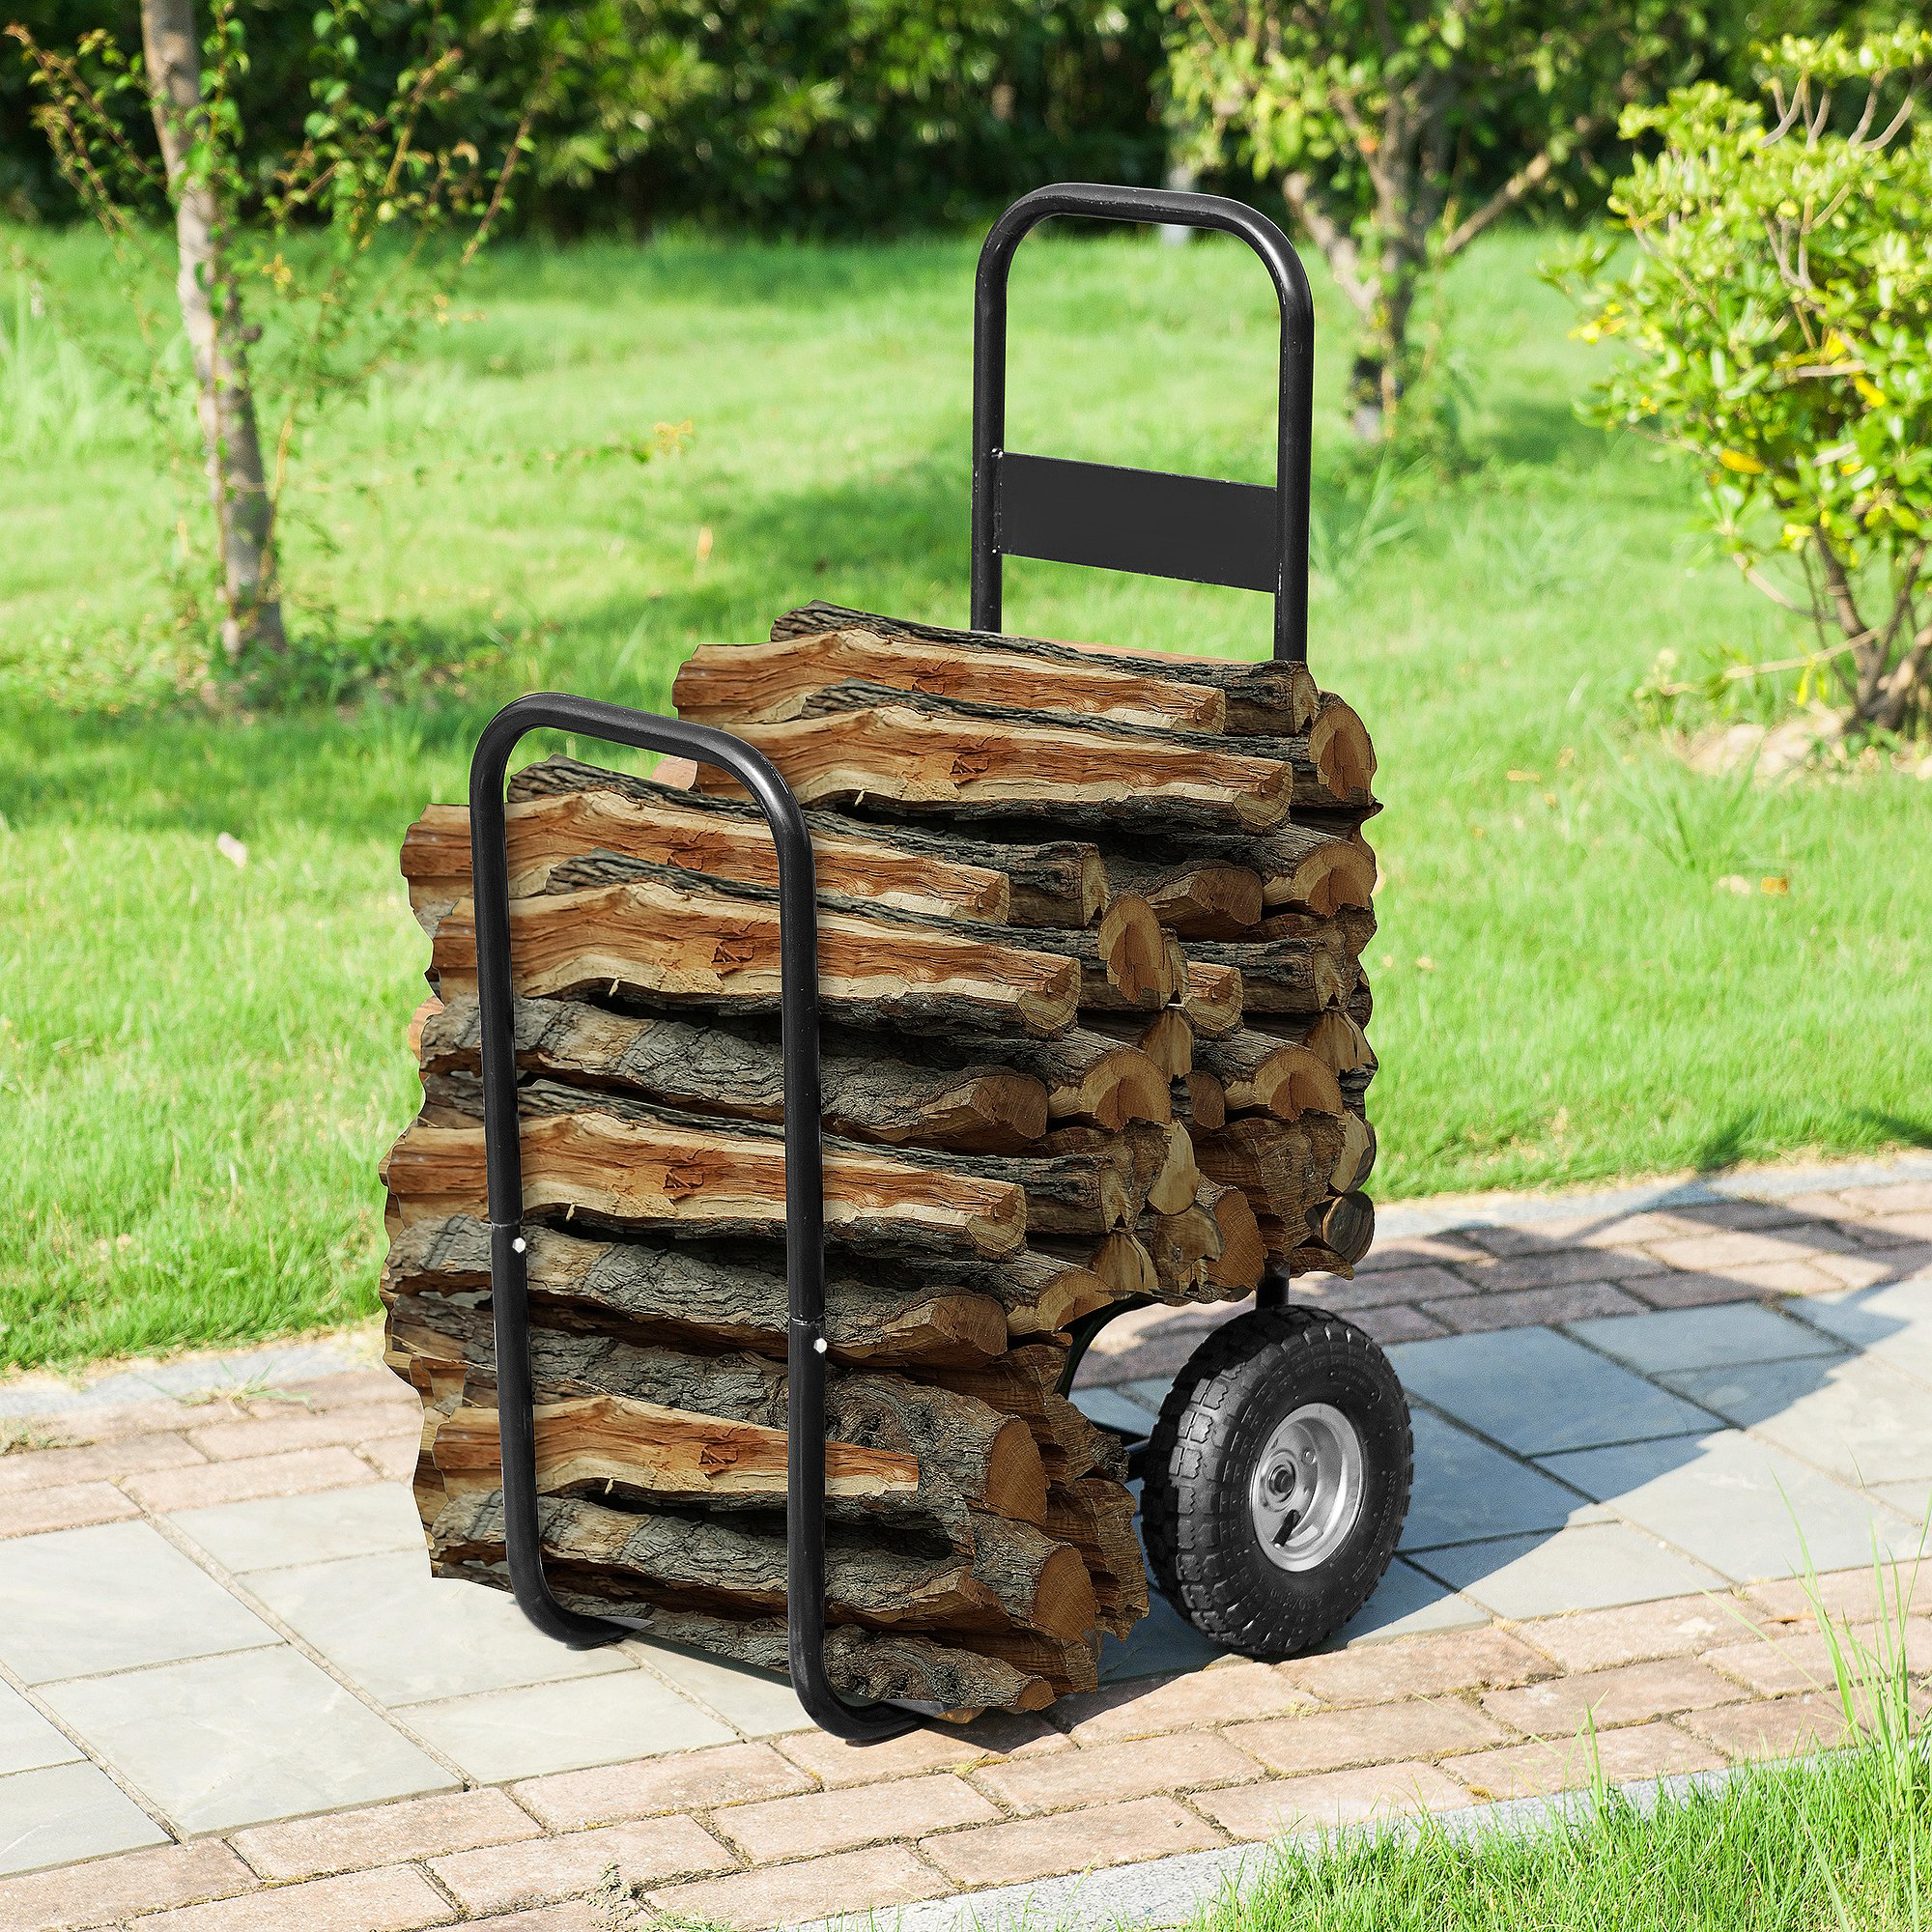 Earth Worth 83-DT5199 Firewood Log Cart | Wood Mover-Hauler-Roller | Blac by Earth Worth